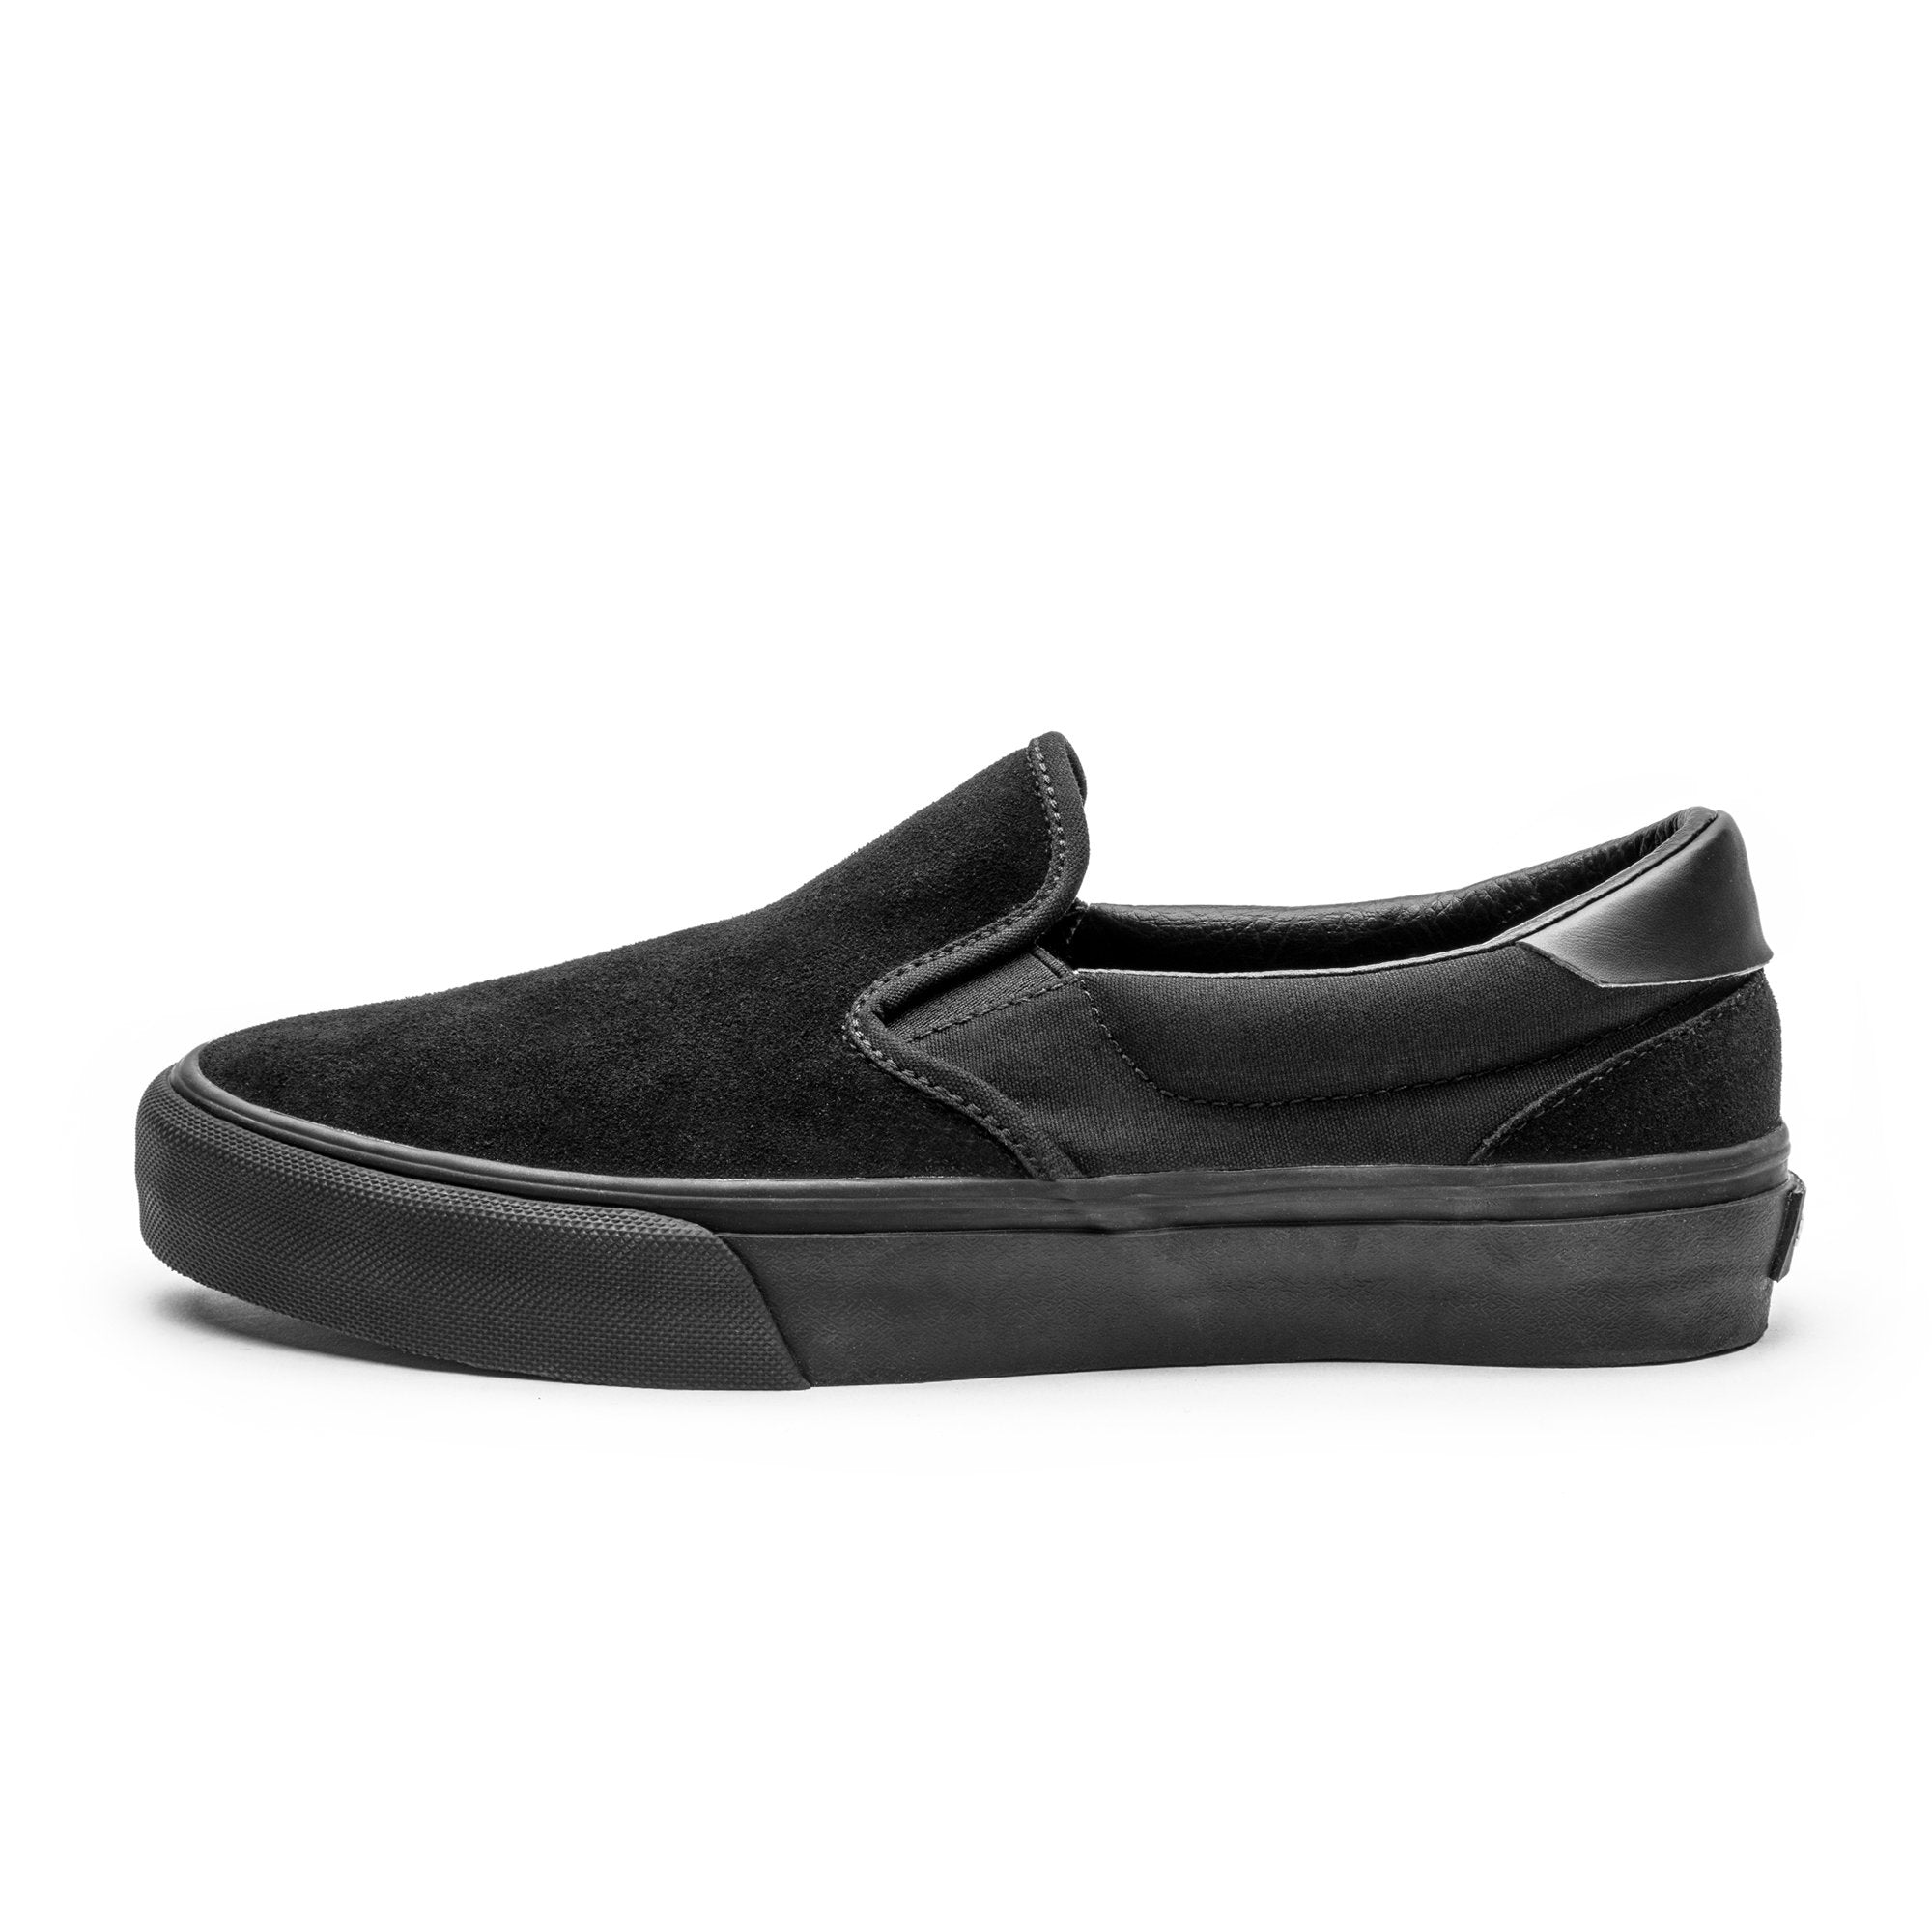 VENTURA / BLACK BLACK SUEDE / Lateral View